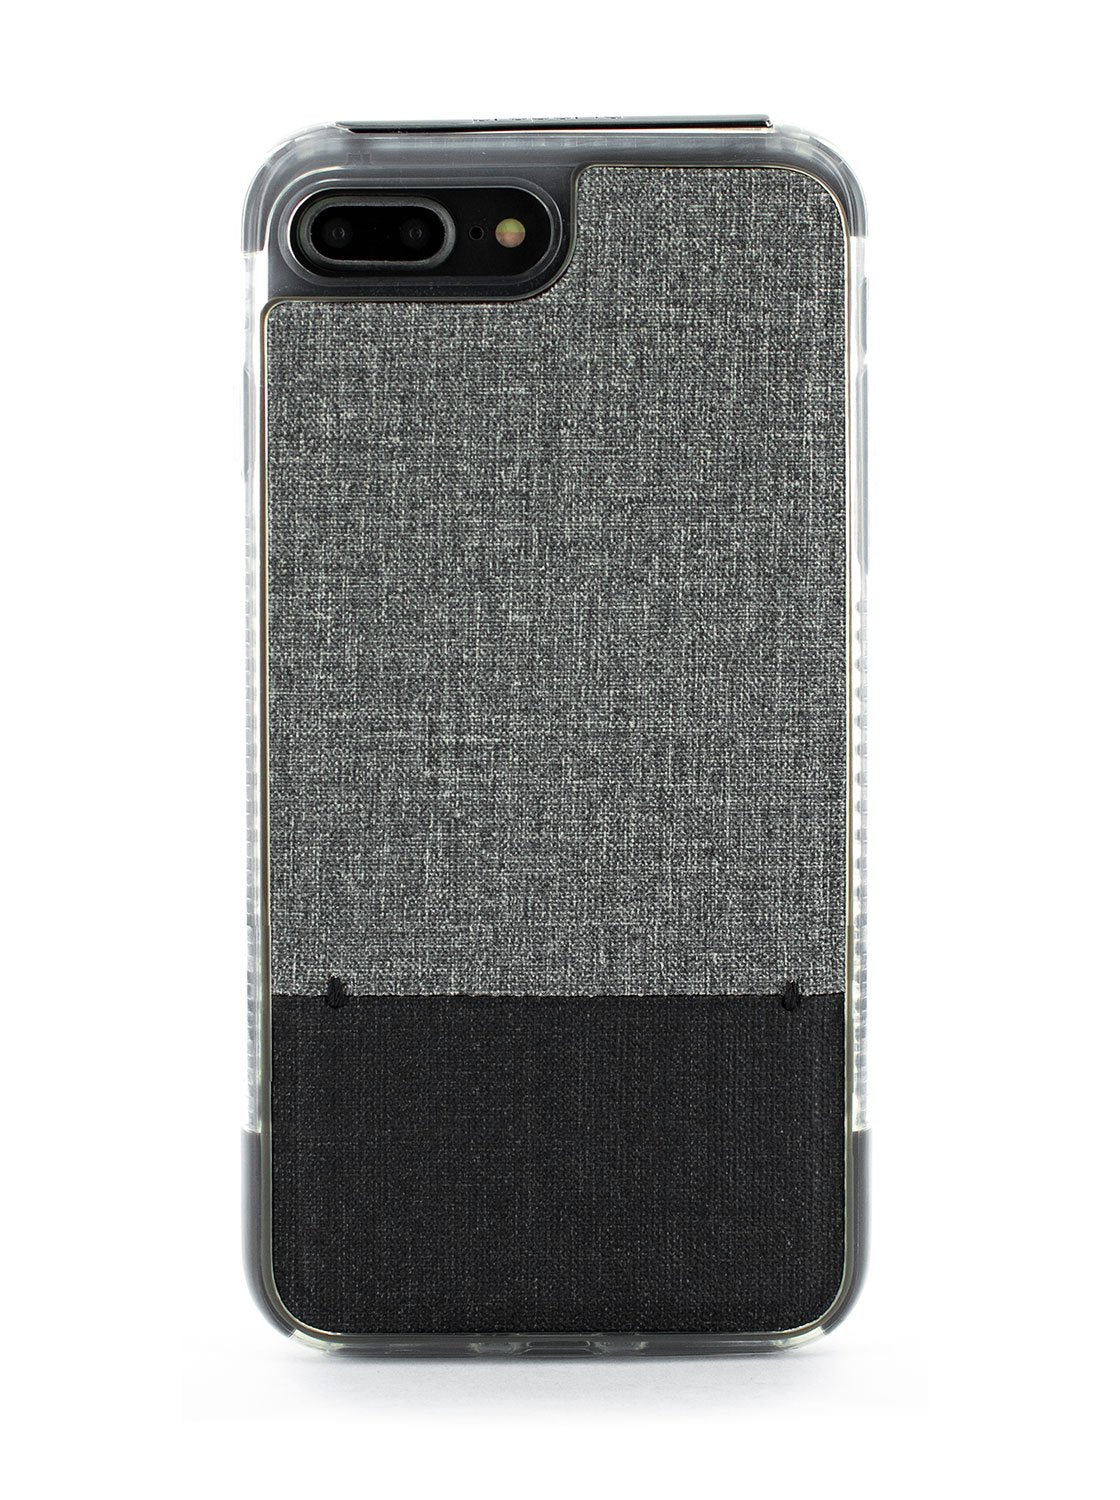 FLEX Anti Shock Kickstand Case for iPhone 8 Plus / 7 Plus - Grey Marl